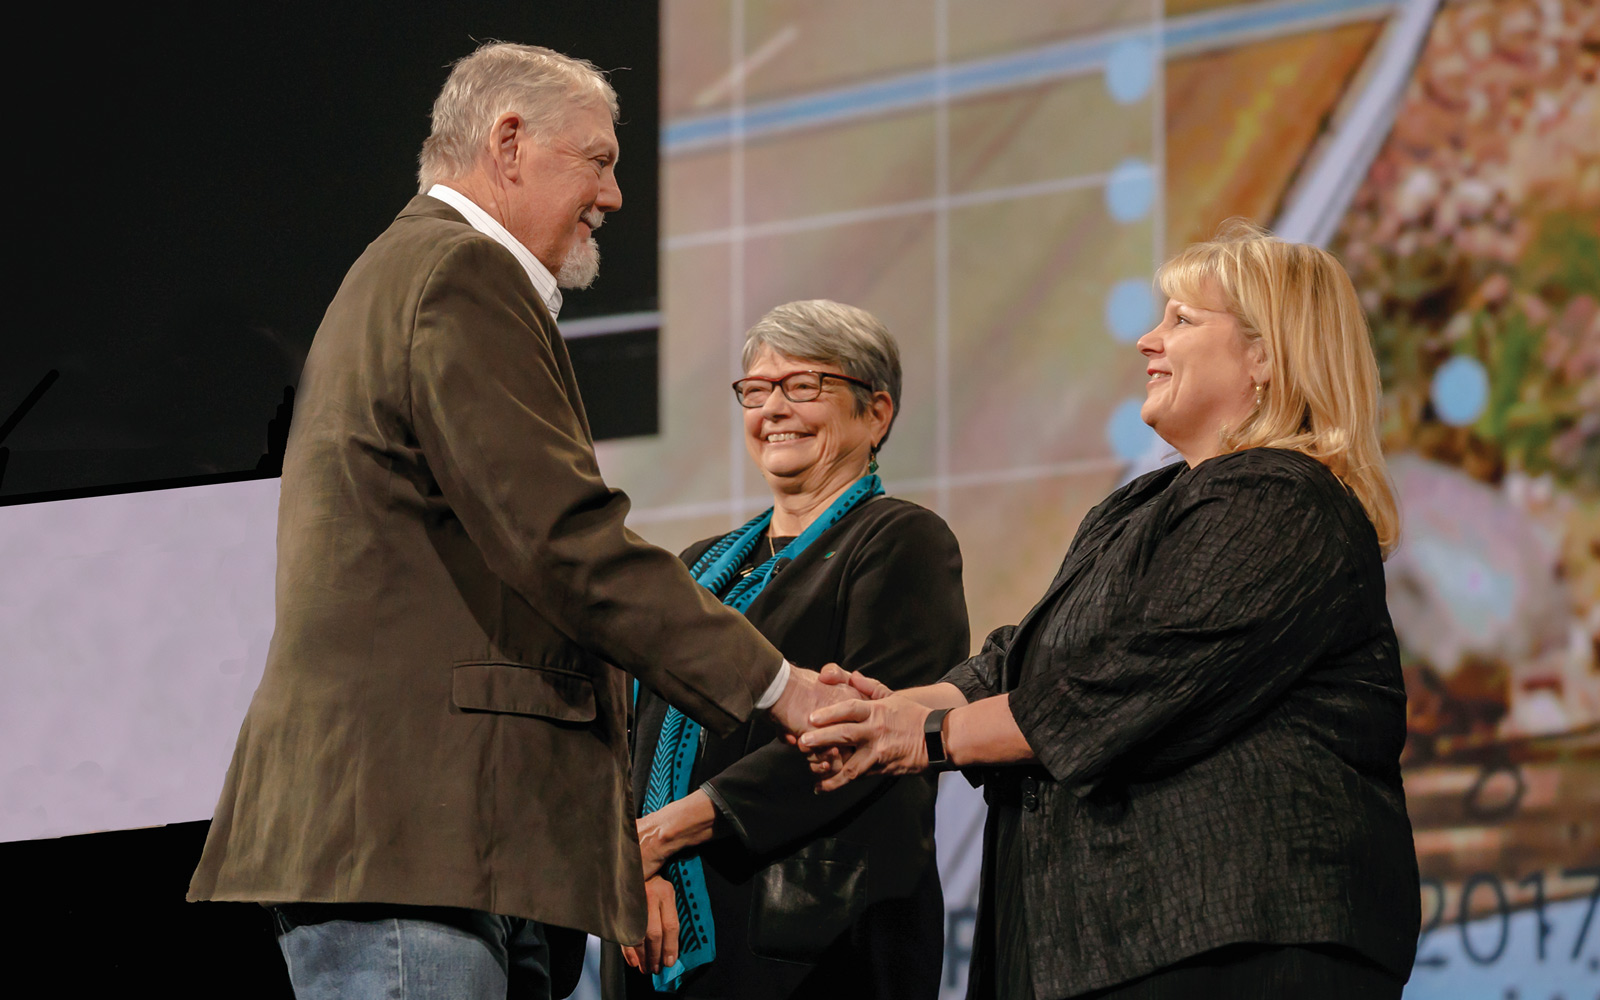 Richard Sutton (left) receives the ASLA Research Honor Award at the ASLA Annual Meeting and EXPO in Los Angeles Oct. 23 from Vaughn B. Rinner and Elizabeth Miller.  | Photo courtesy of ASLA / EPNAC